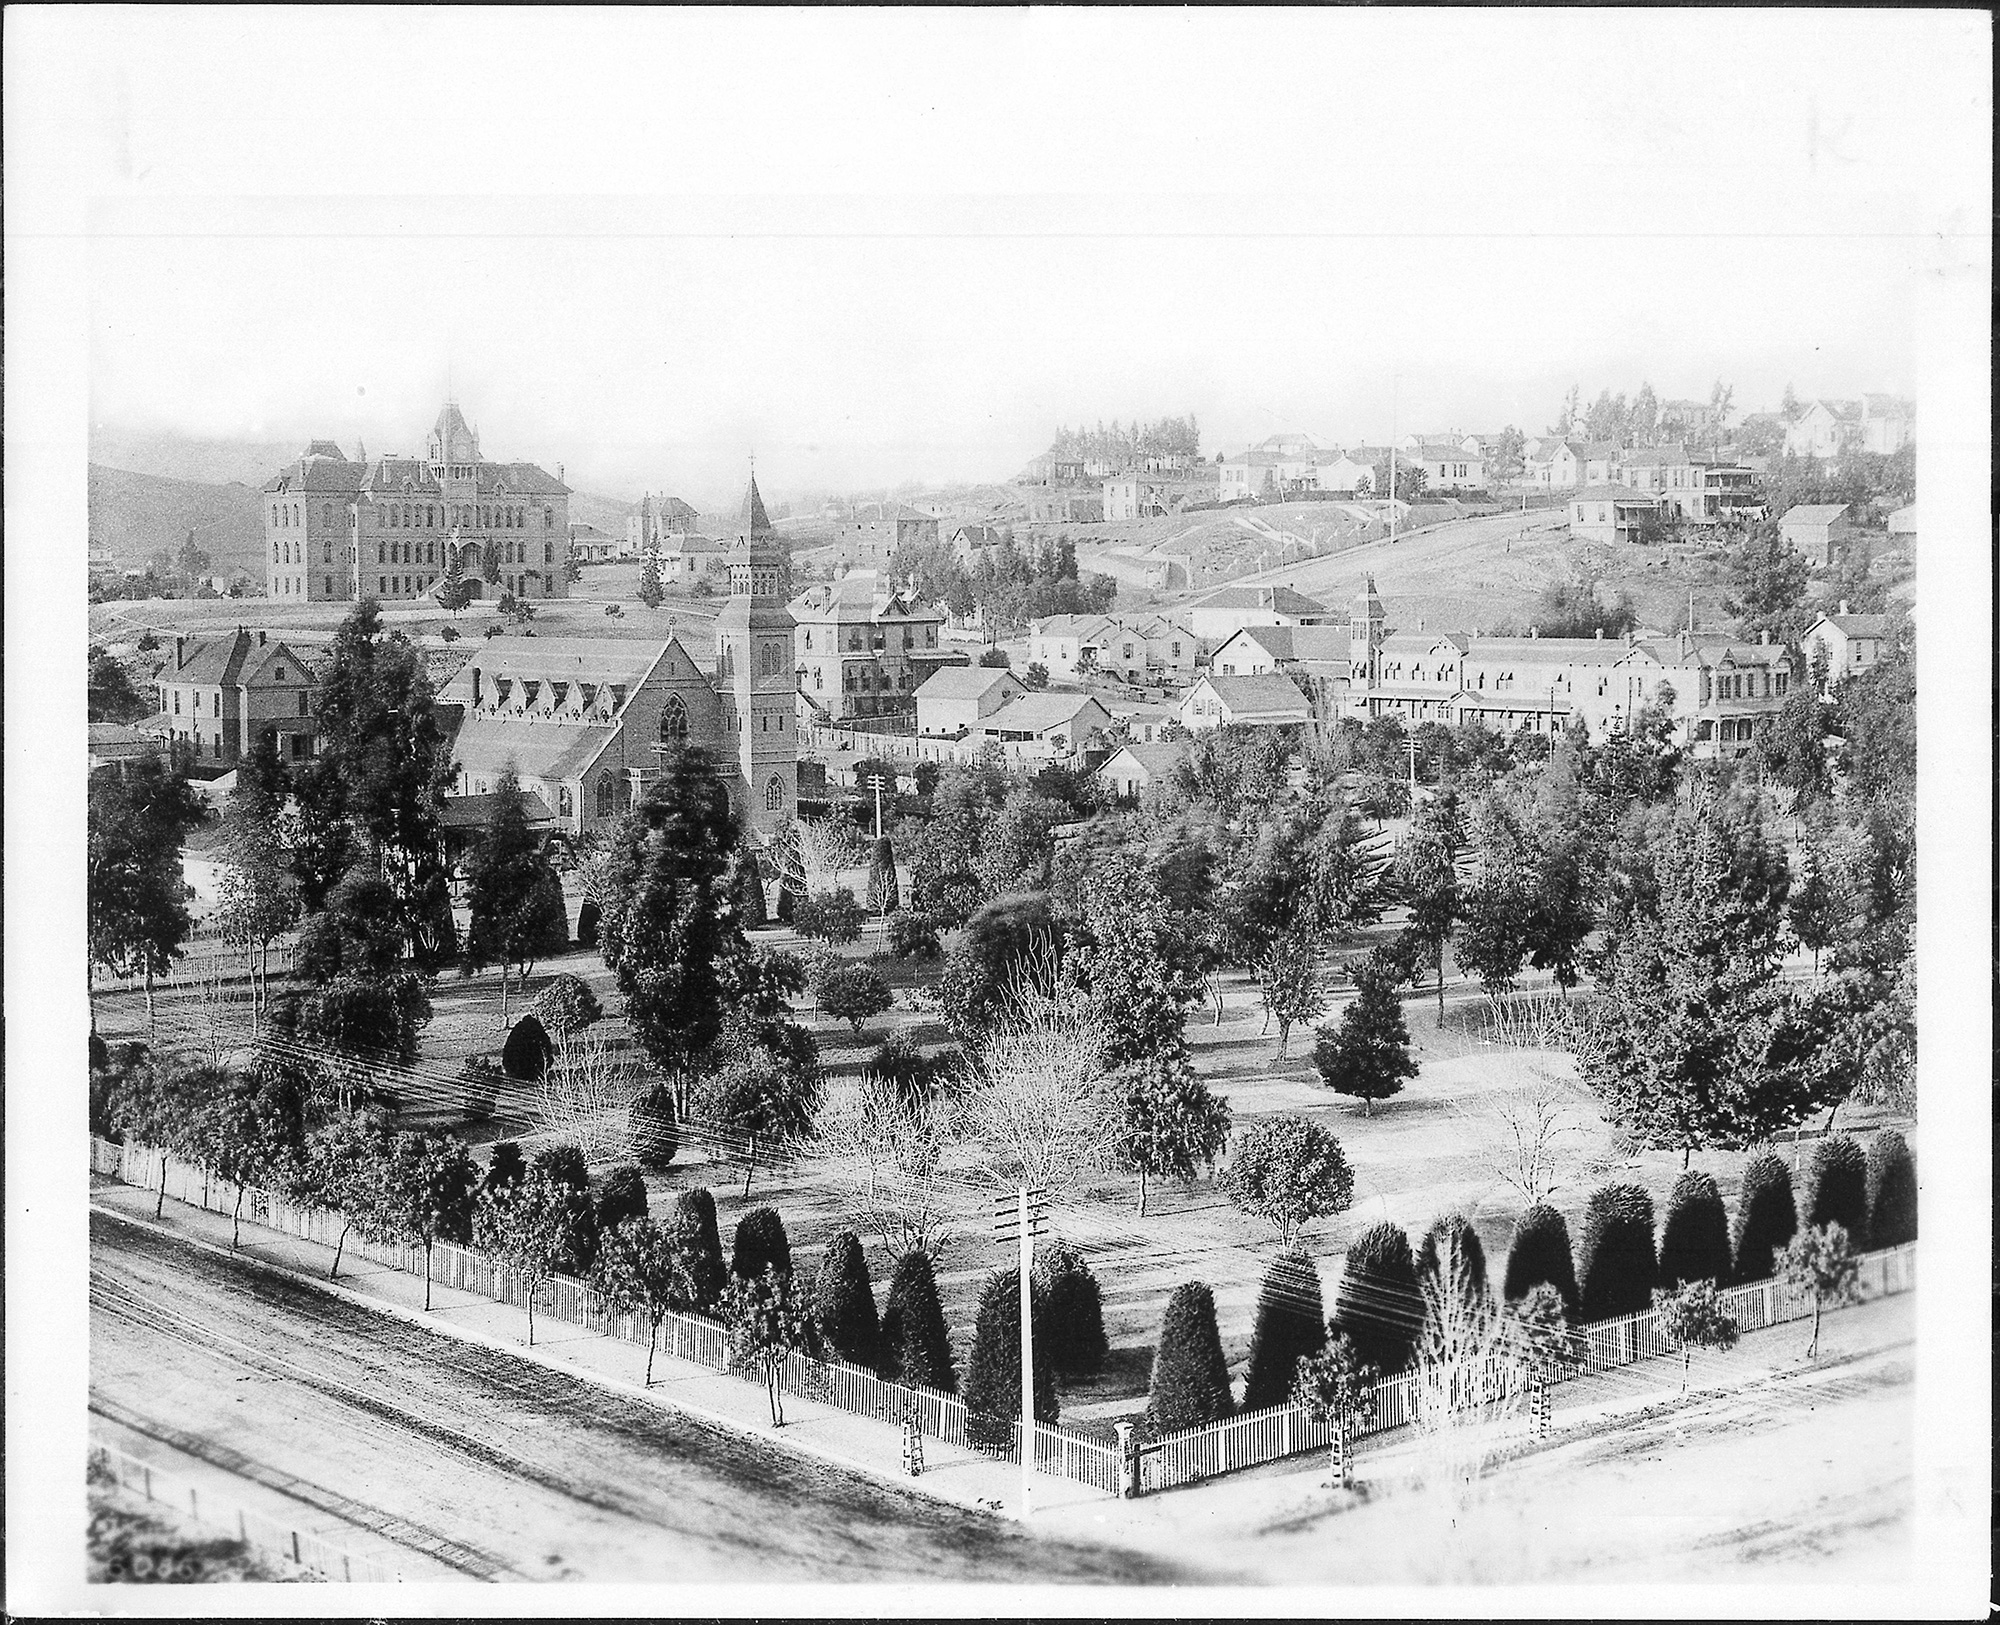 The park in 1872, looking north toward the Normal School and Bunker Hill. Mary's house is out of frame to the right.